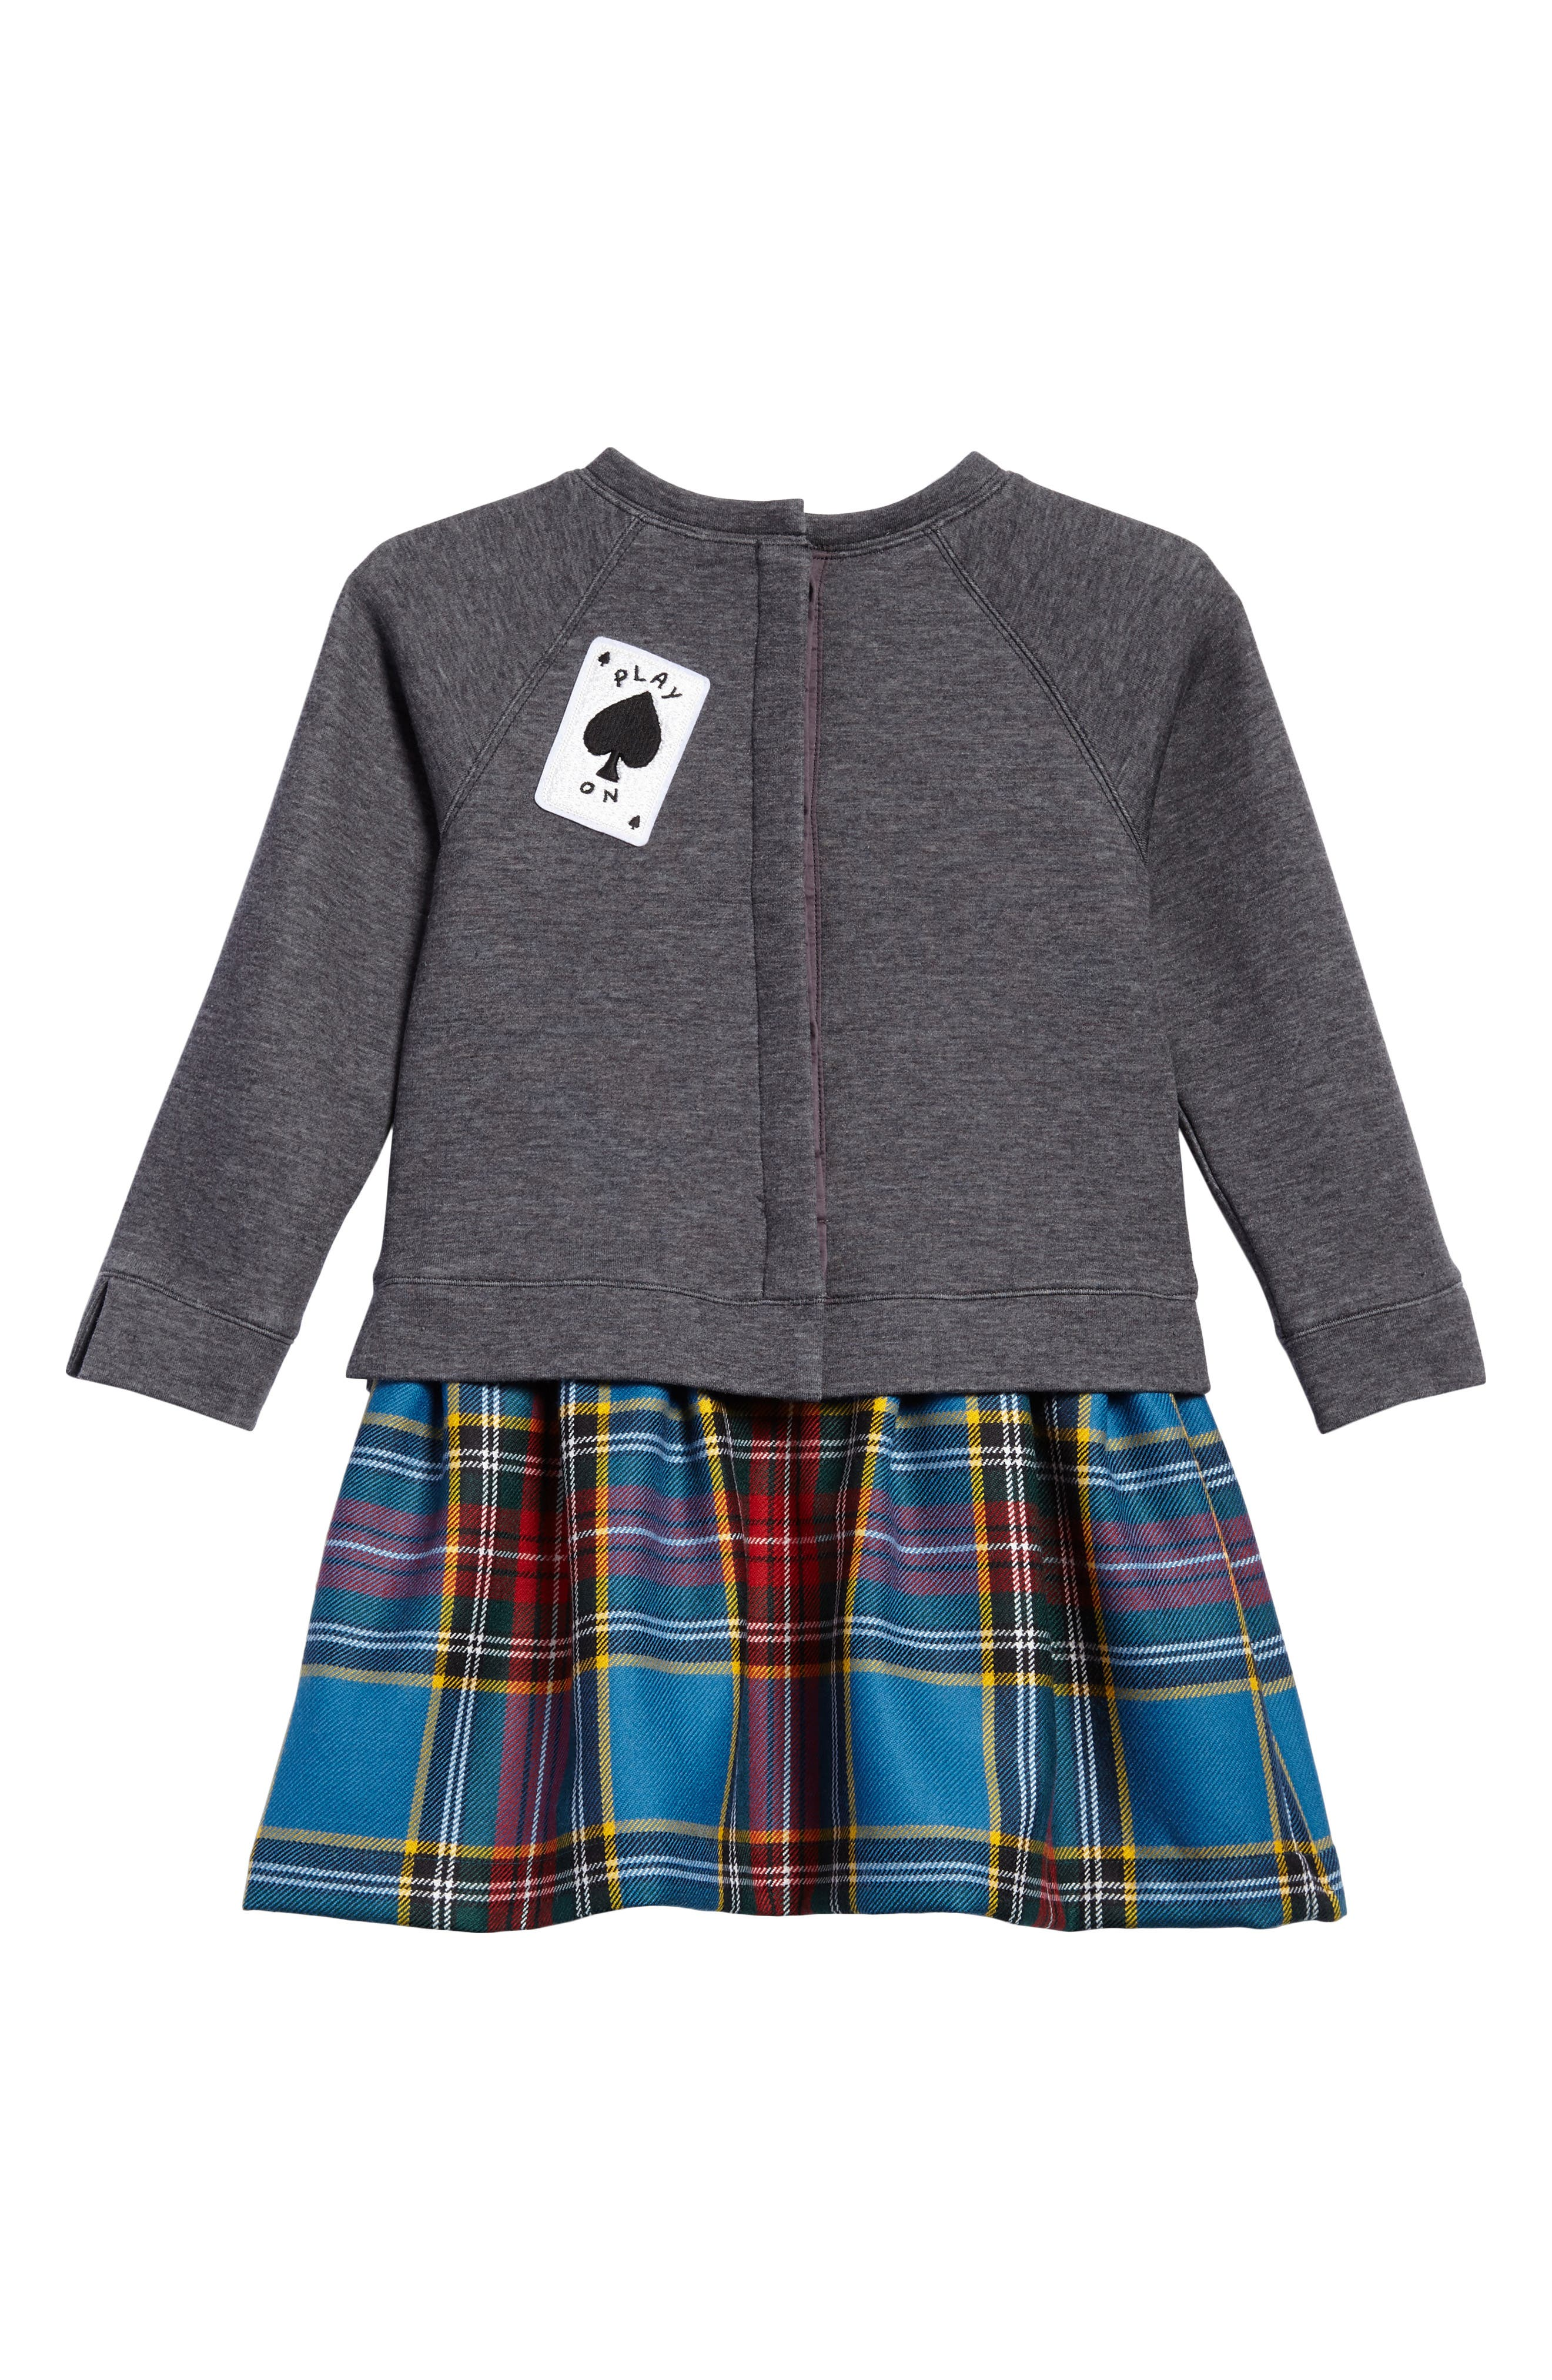 Shop Burkes Outlet for trusted brand name baby clothes, baby toys, and other baby gear that moms love, and at prices you'll love even more. We have new styles coming in all the time of all kinds of baby .